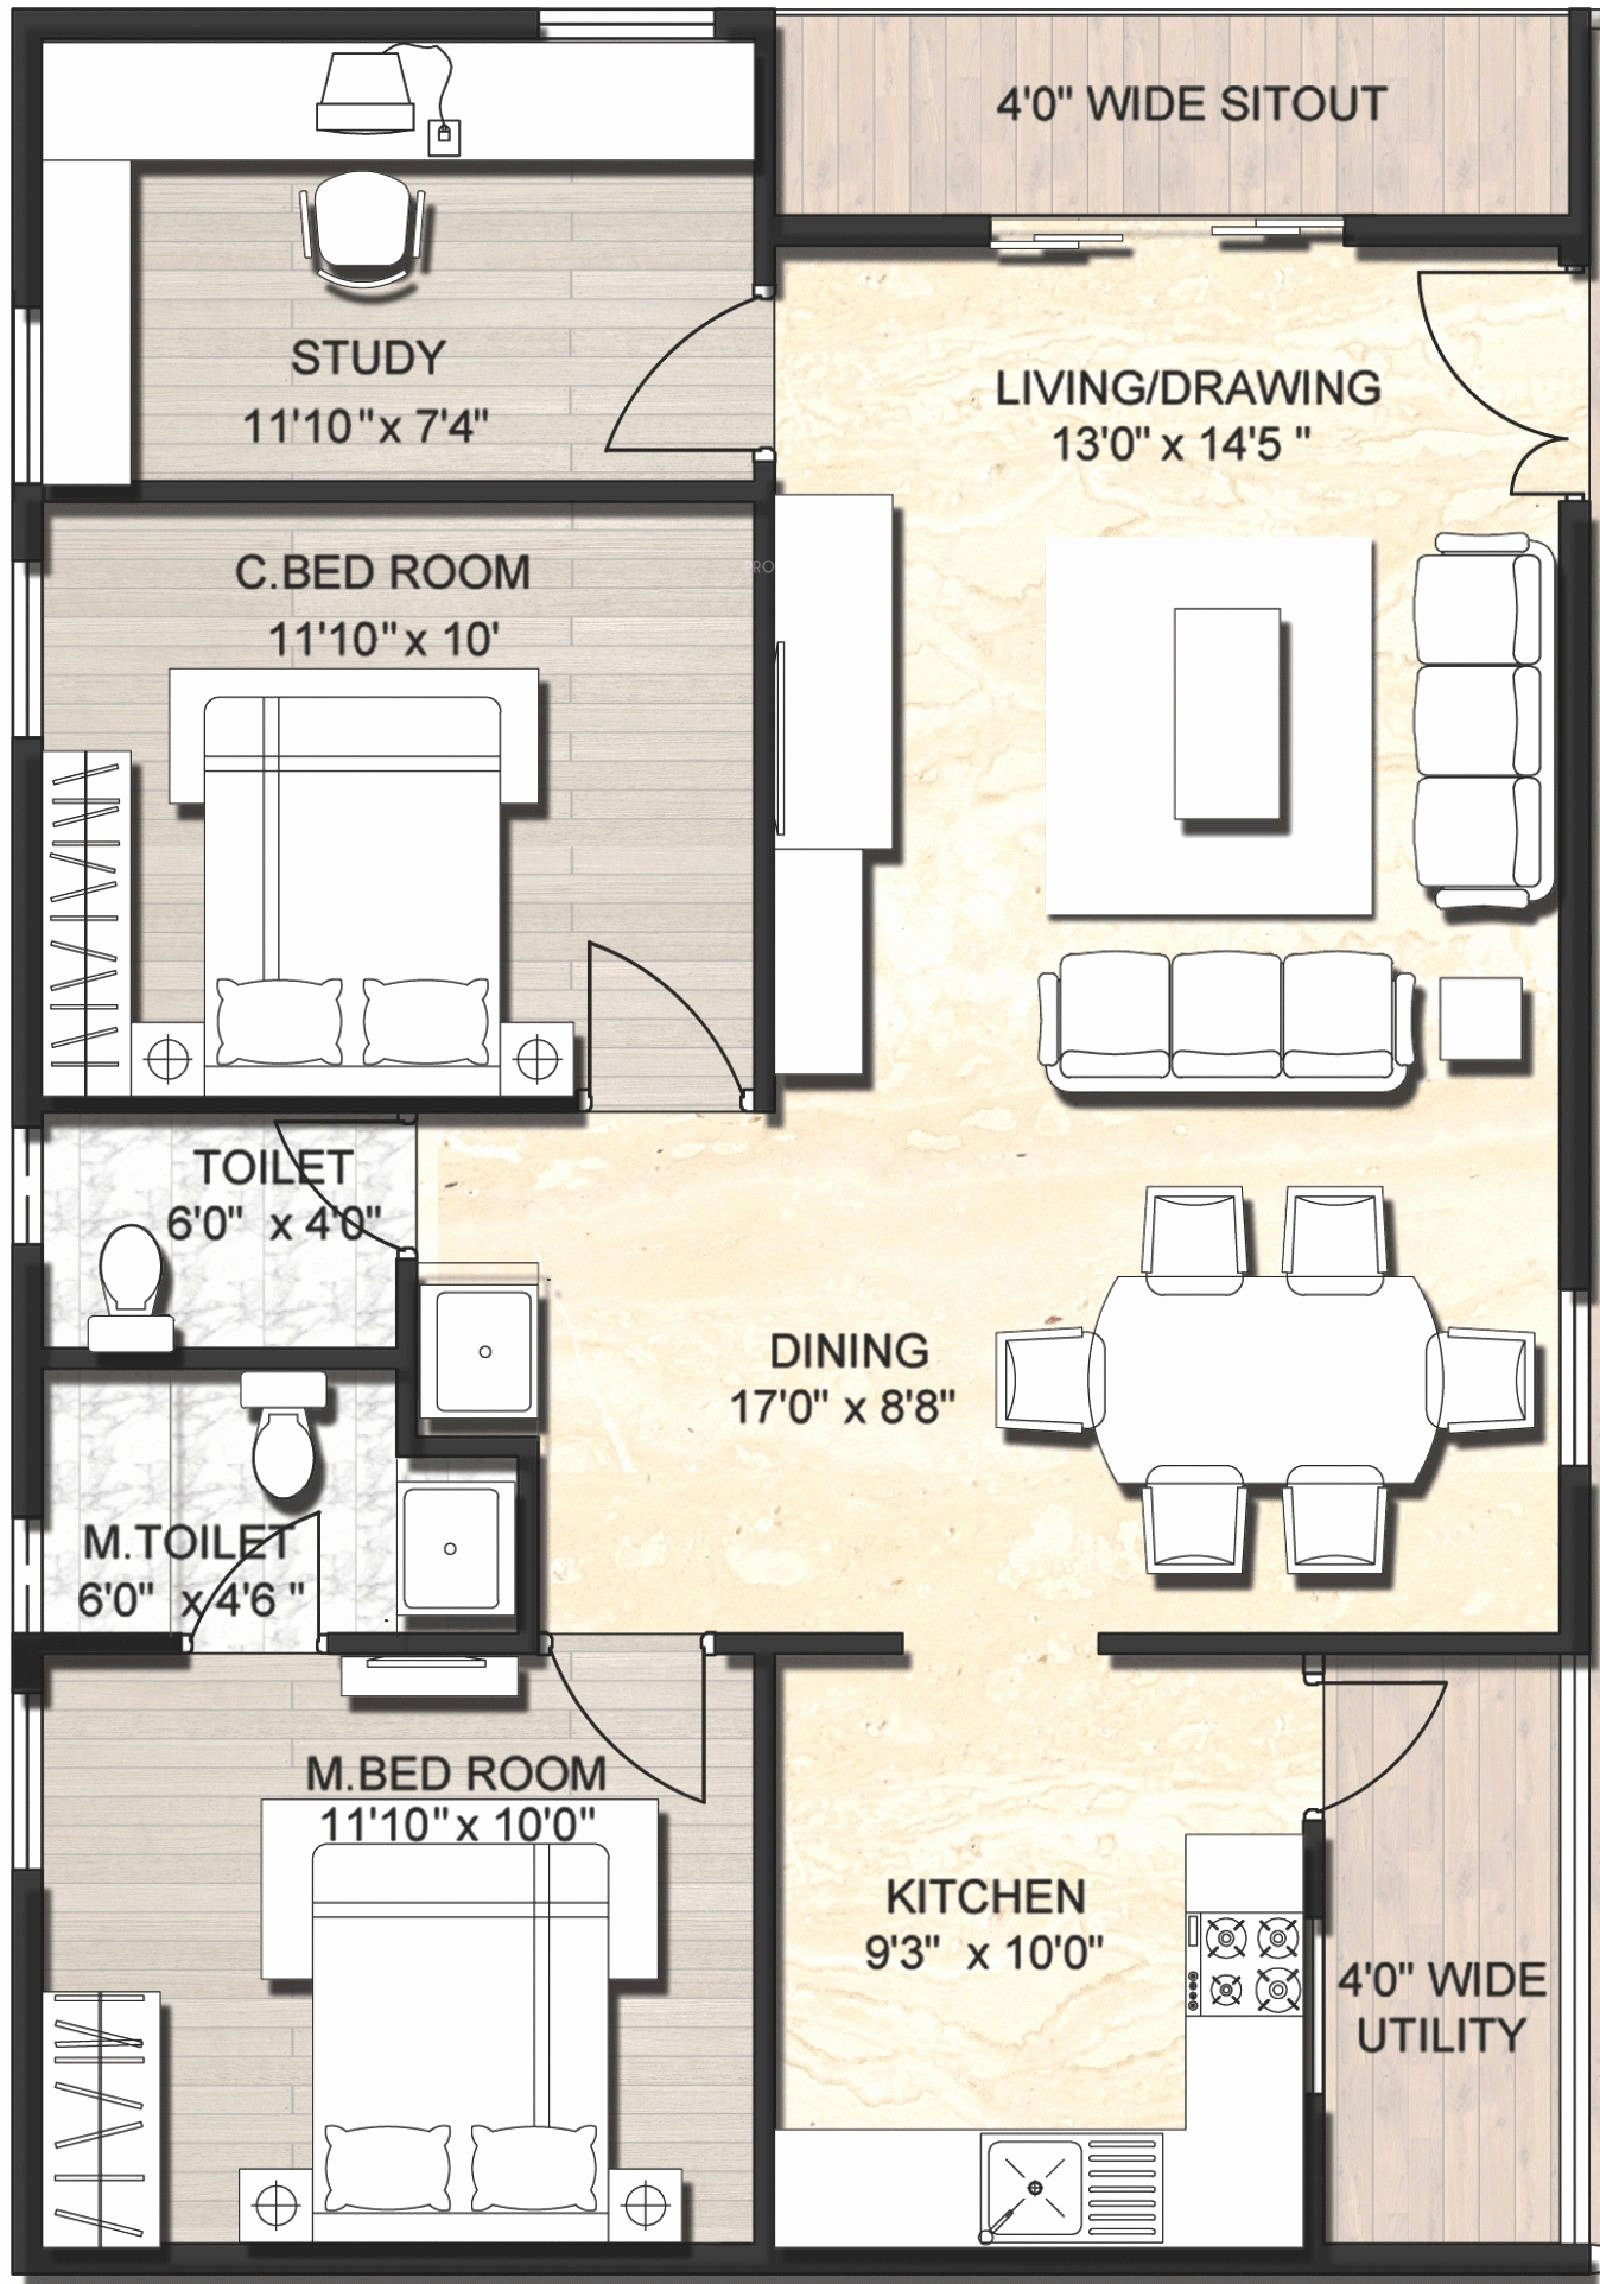 1000 Square Feet House Cost Fresh 900 Sq Ft Duplex House Plans Google Search with Images